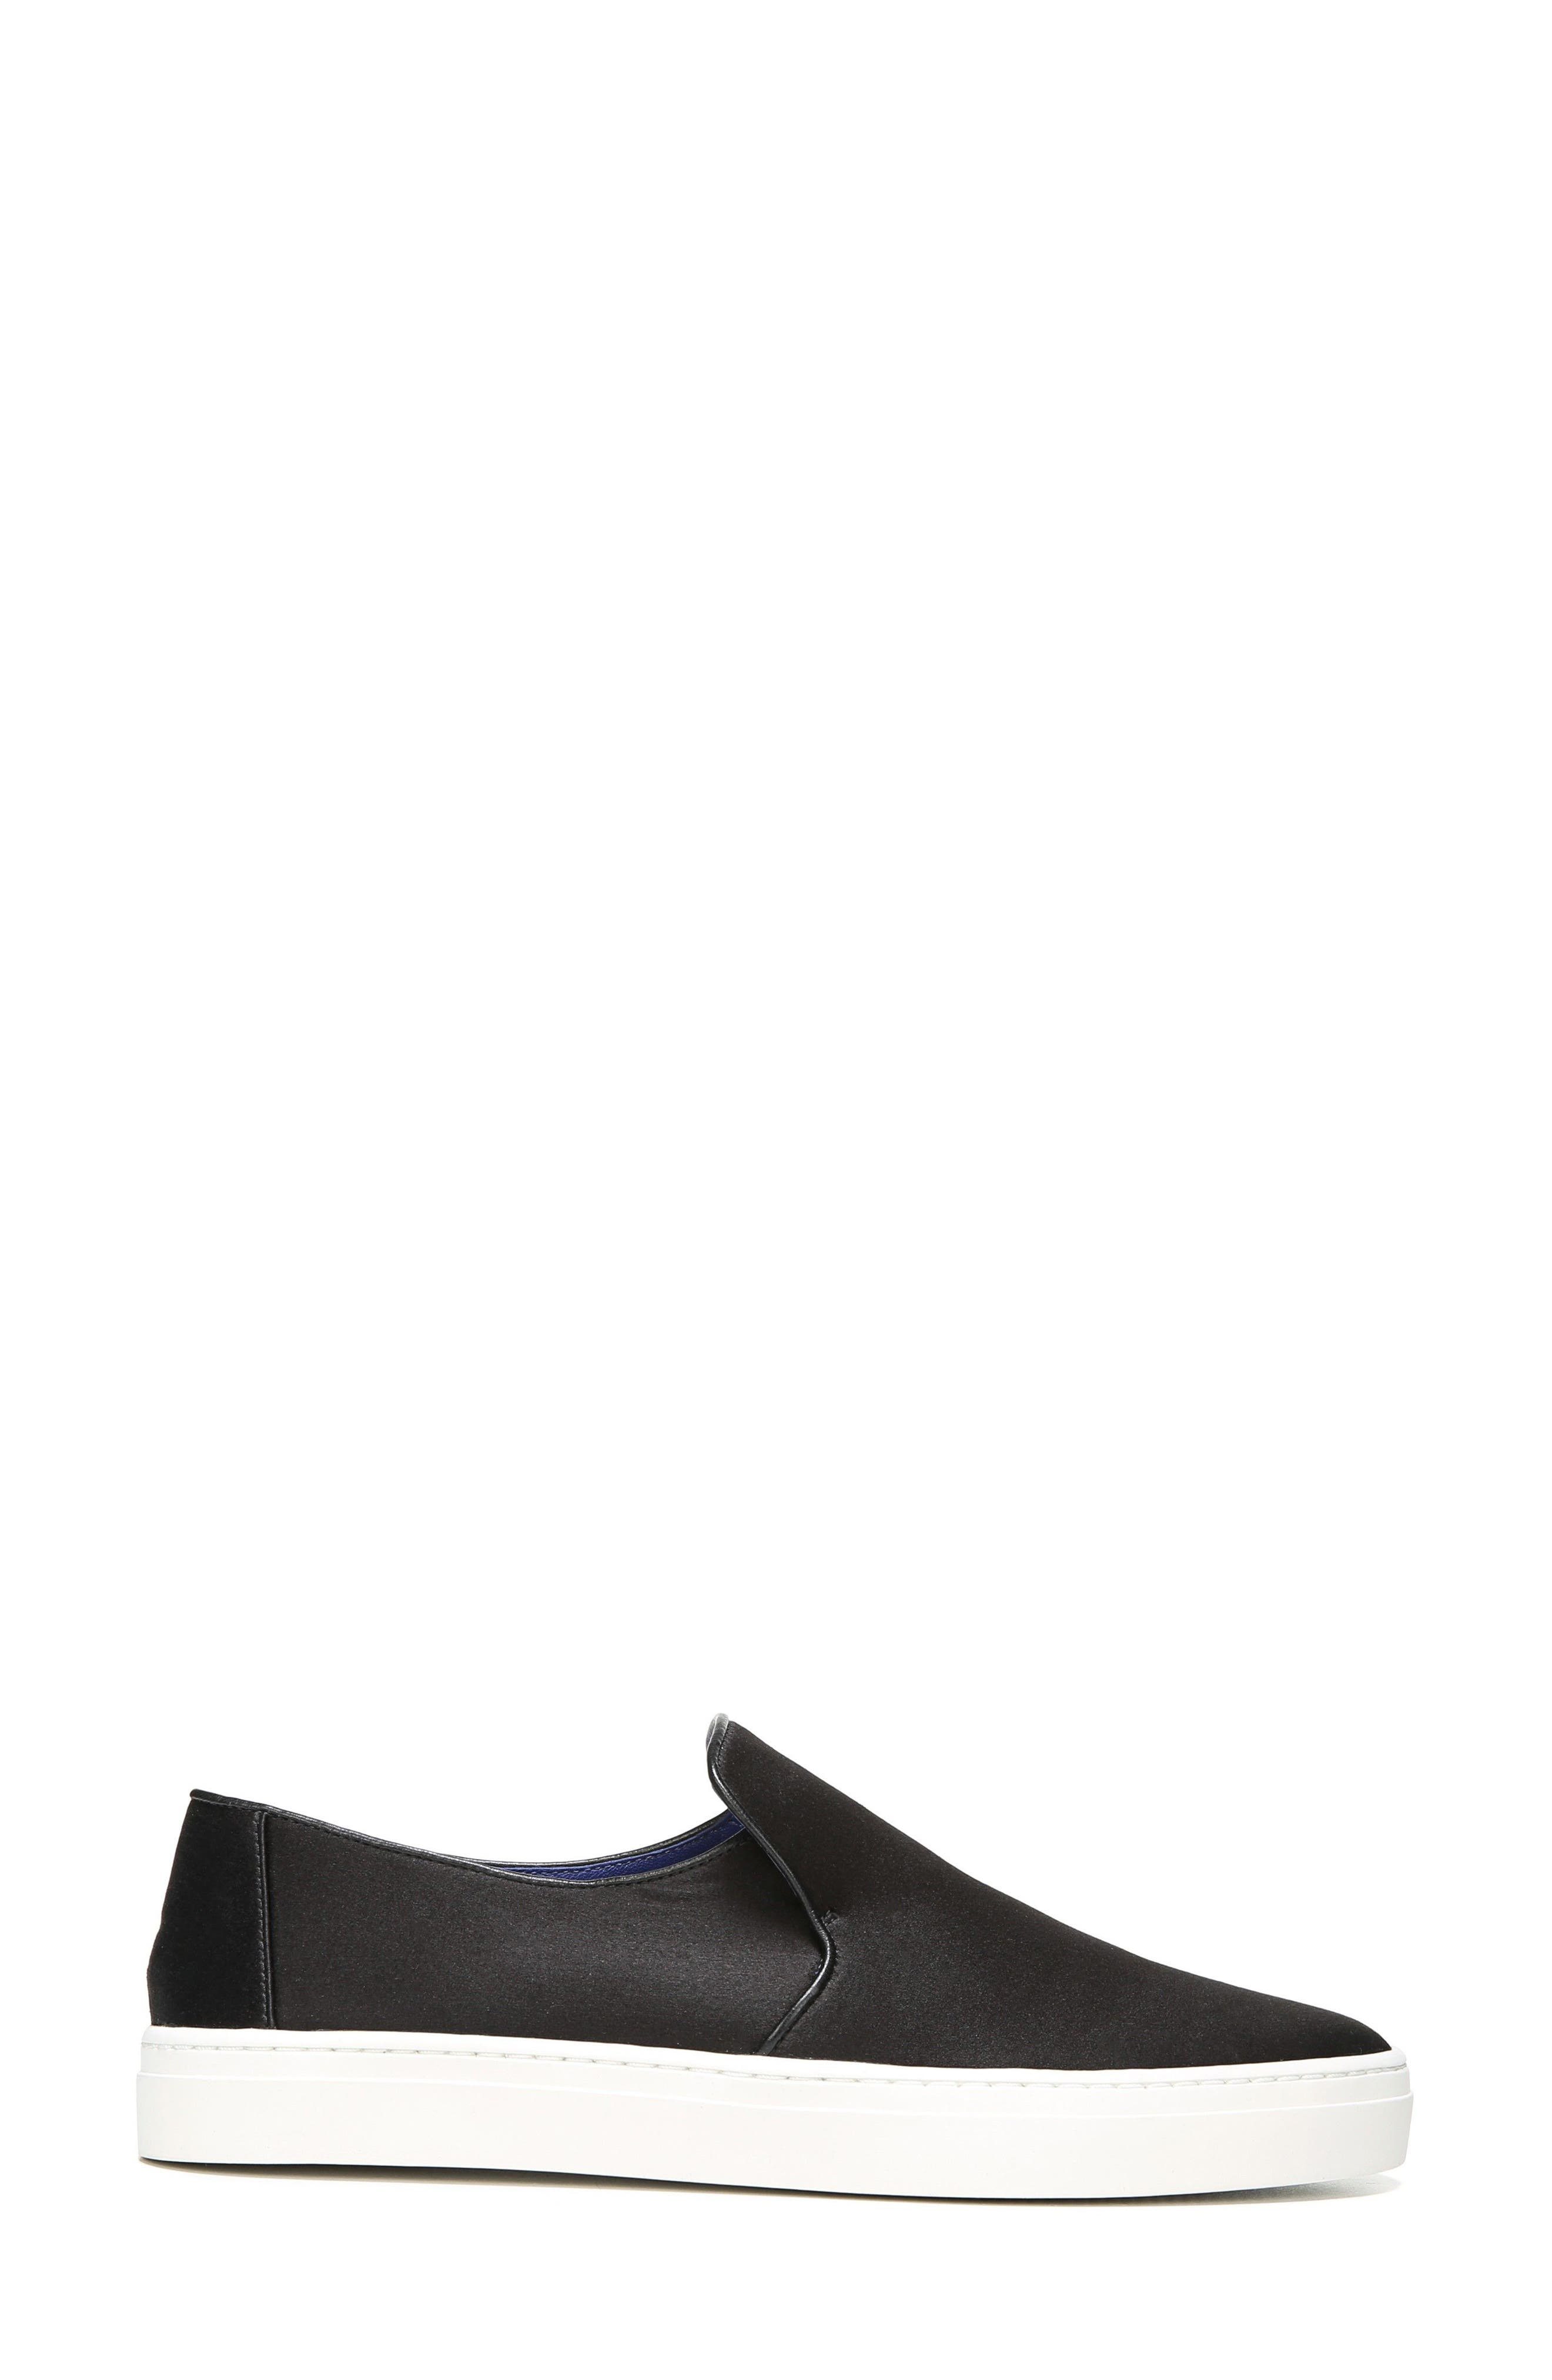 Alternate Image 3  - Diane von Furstenberg Budapest Slip-On Sneaker (Women)